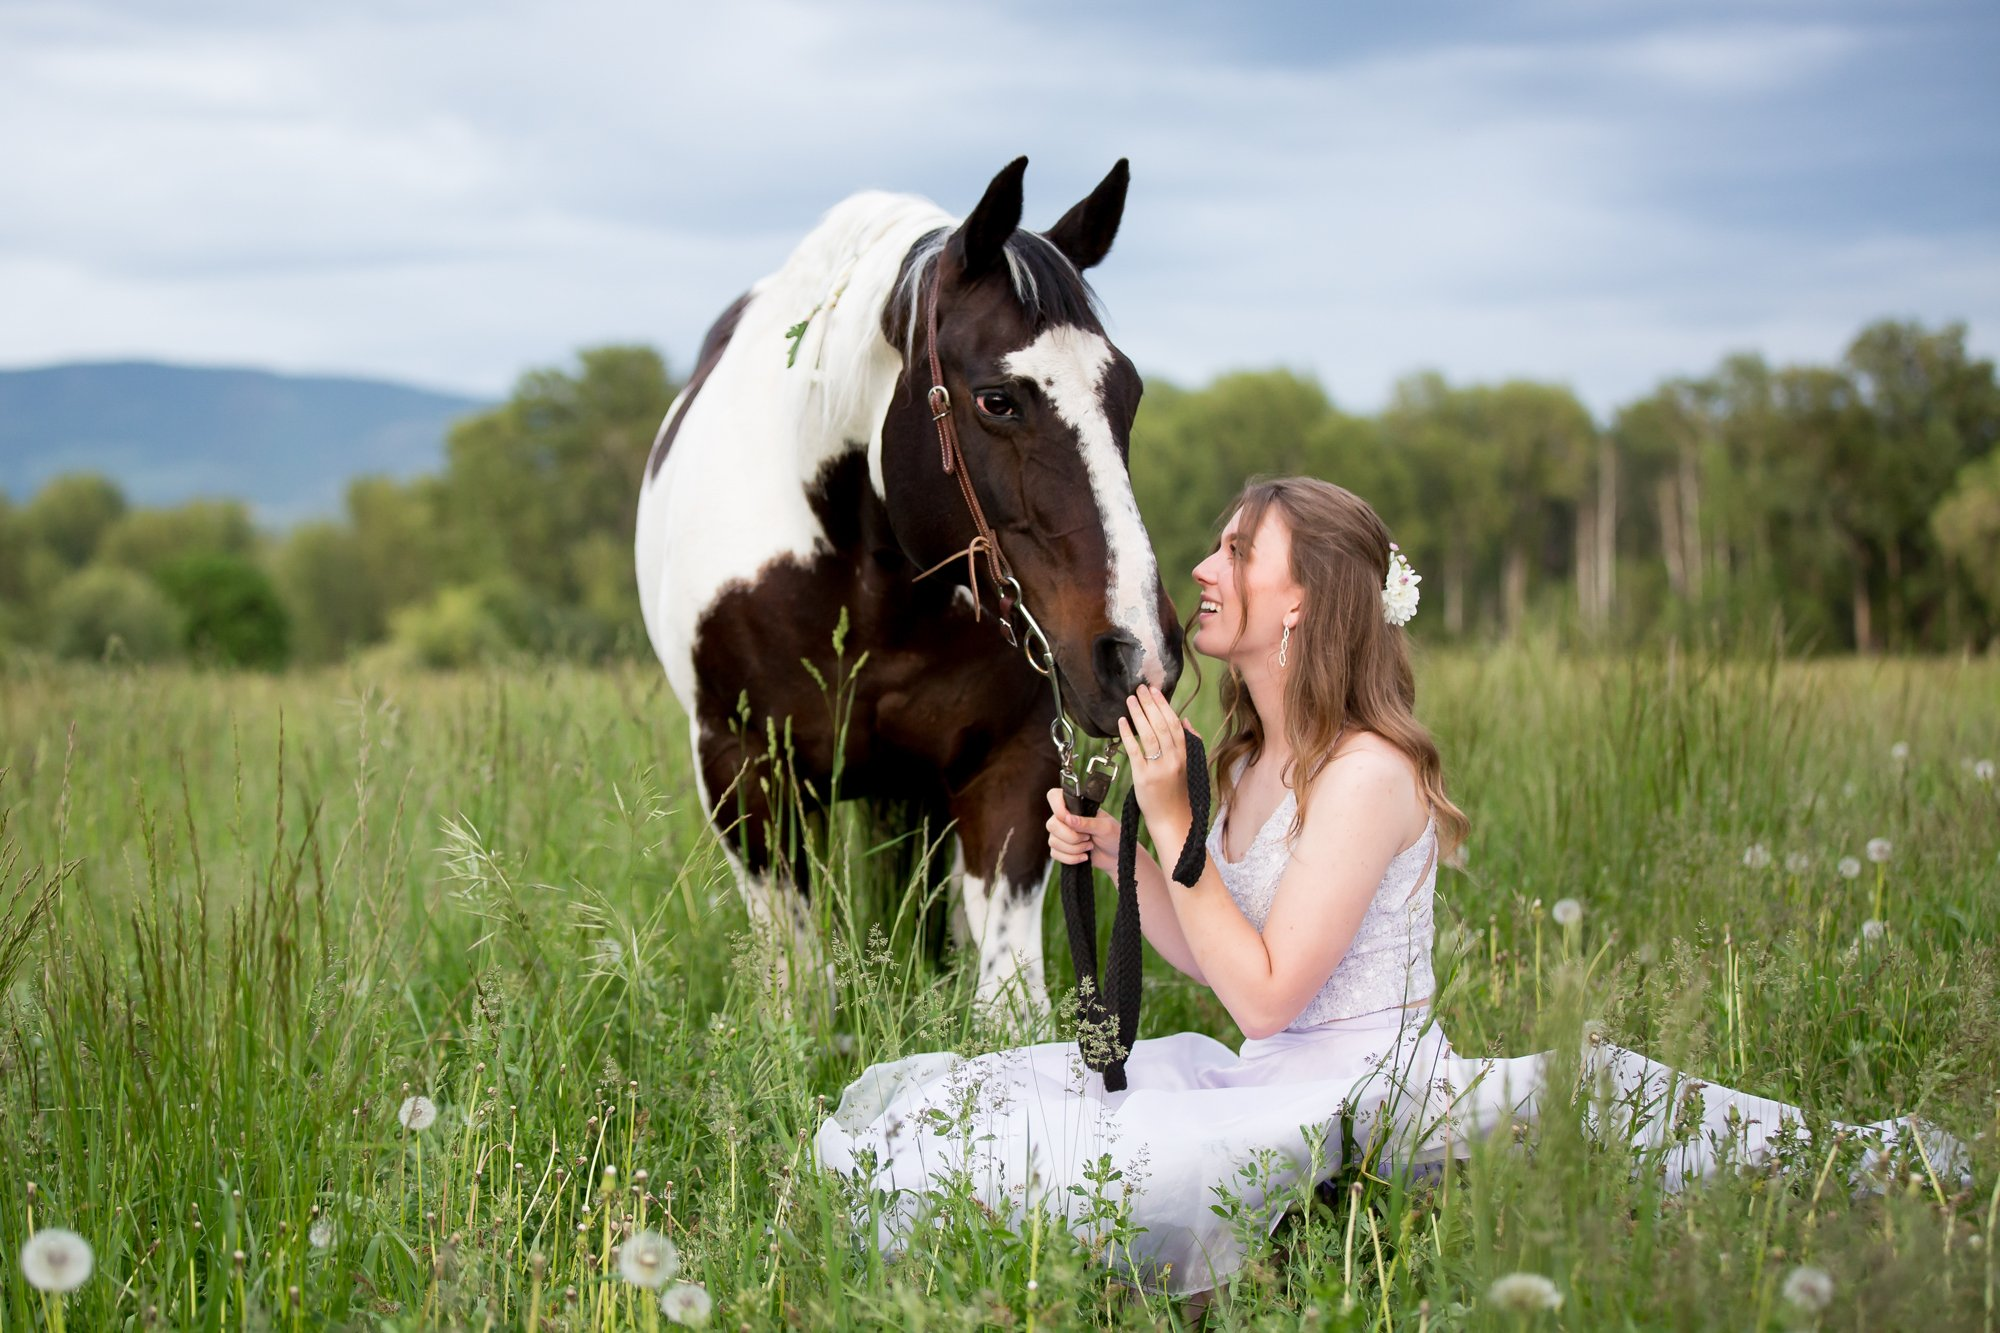 A gorl sitting on the grass looking up at her horse